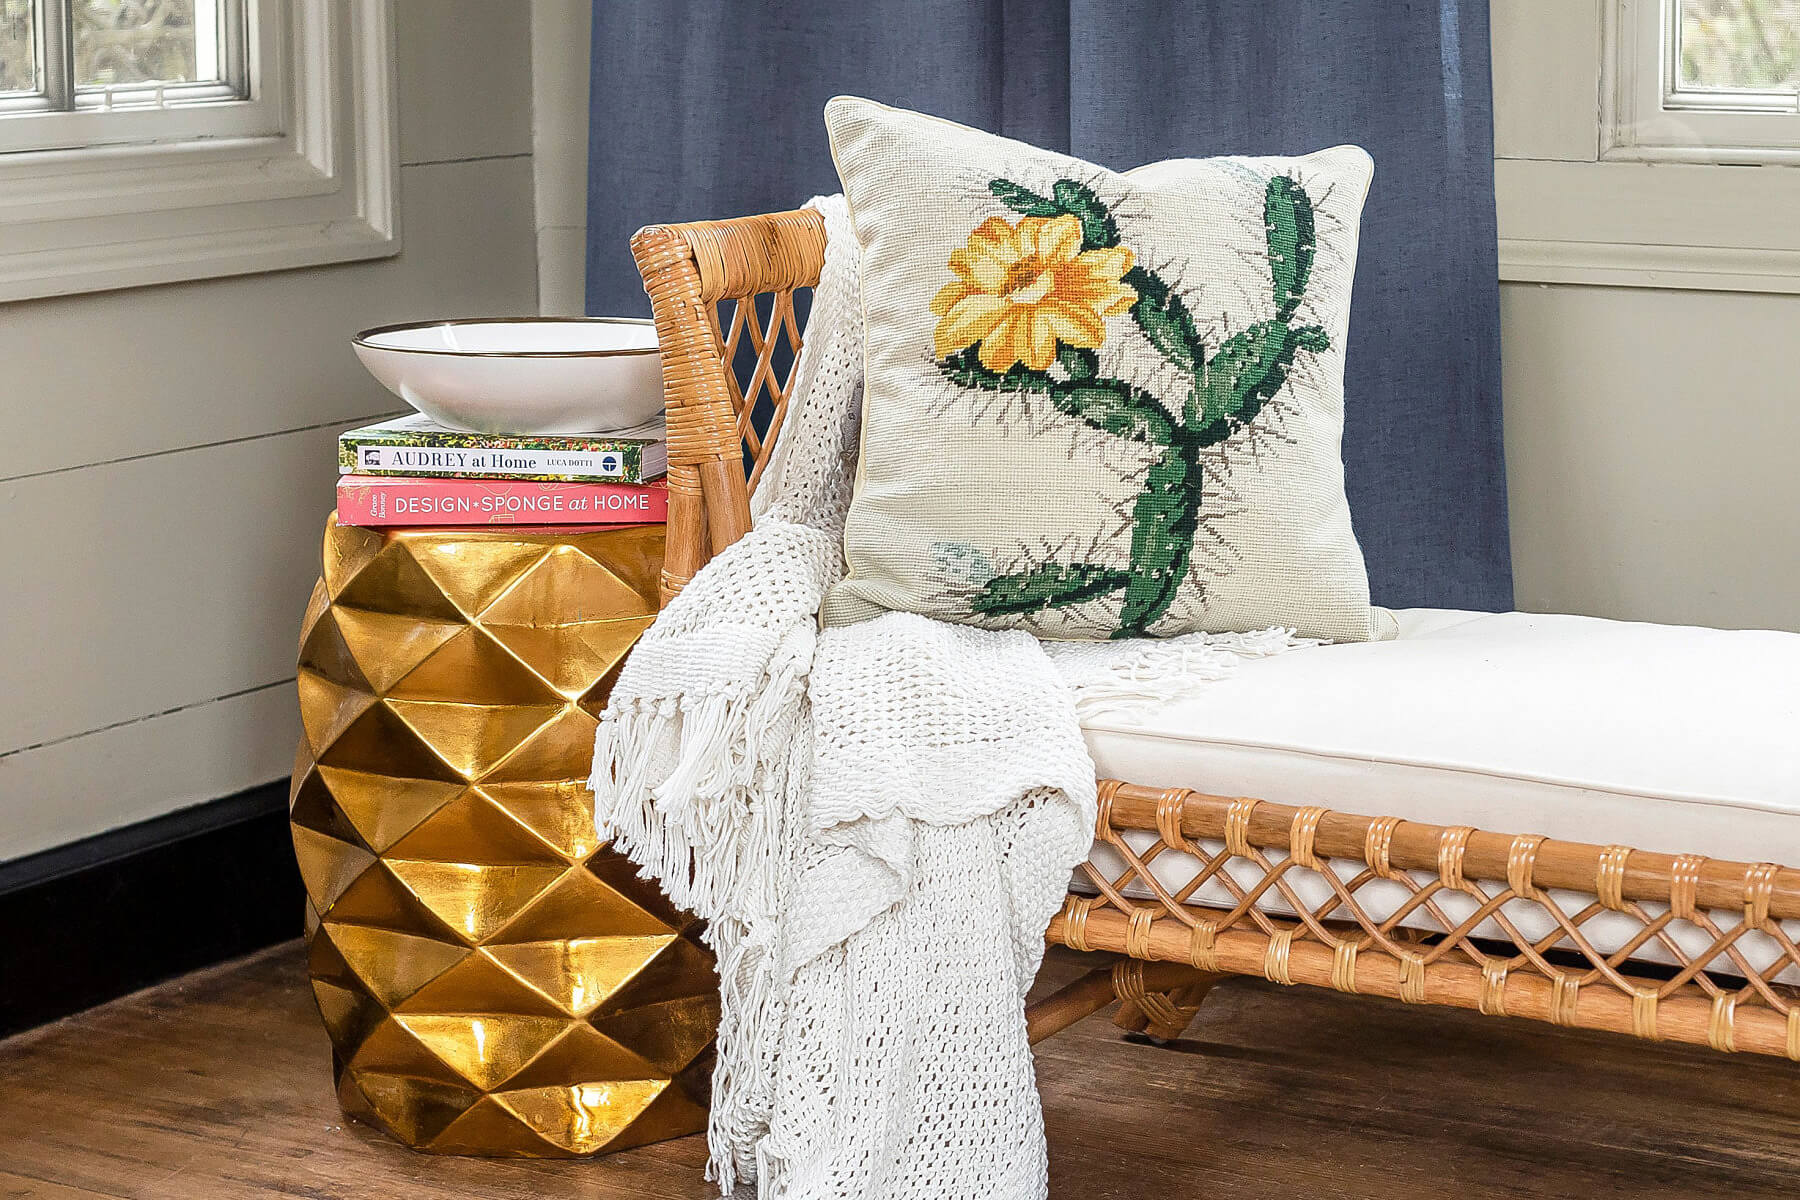 17 Southern FINDS We Love for Late-Summer